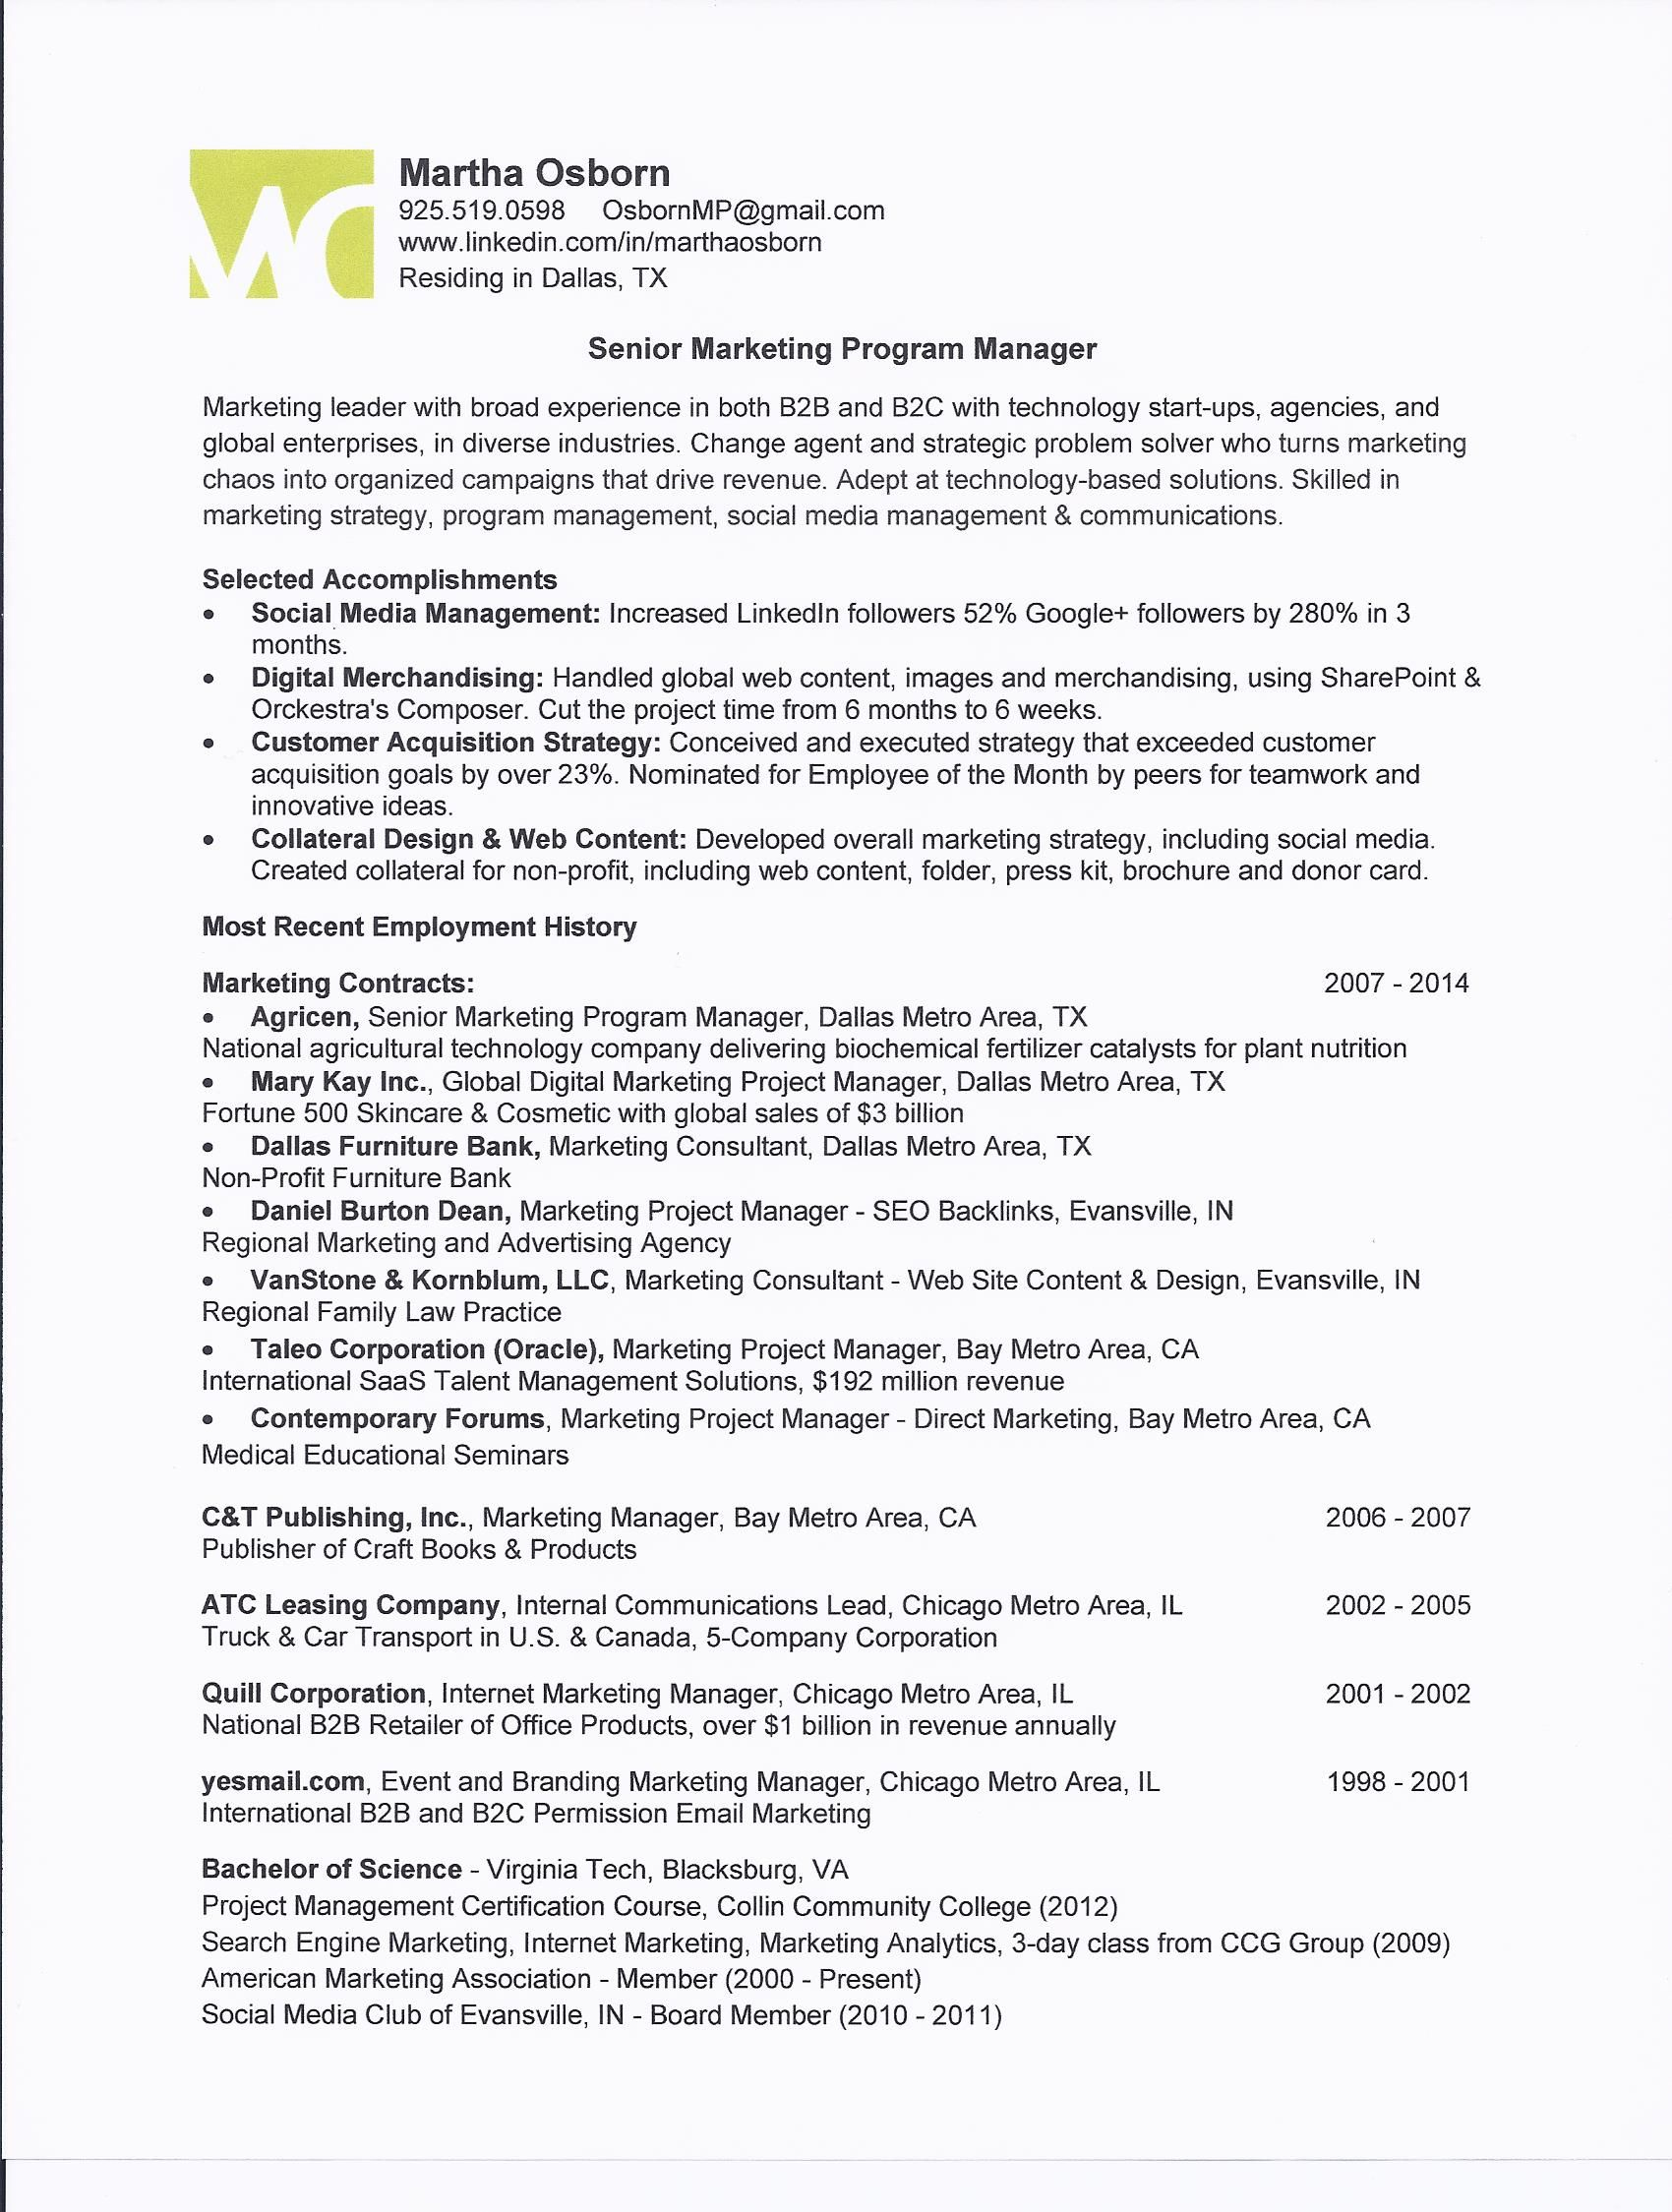 Resume Virginia Tech Marketing Program Manager One Page Resume For Martha